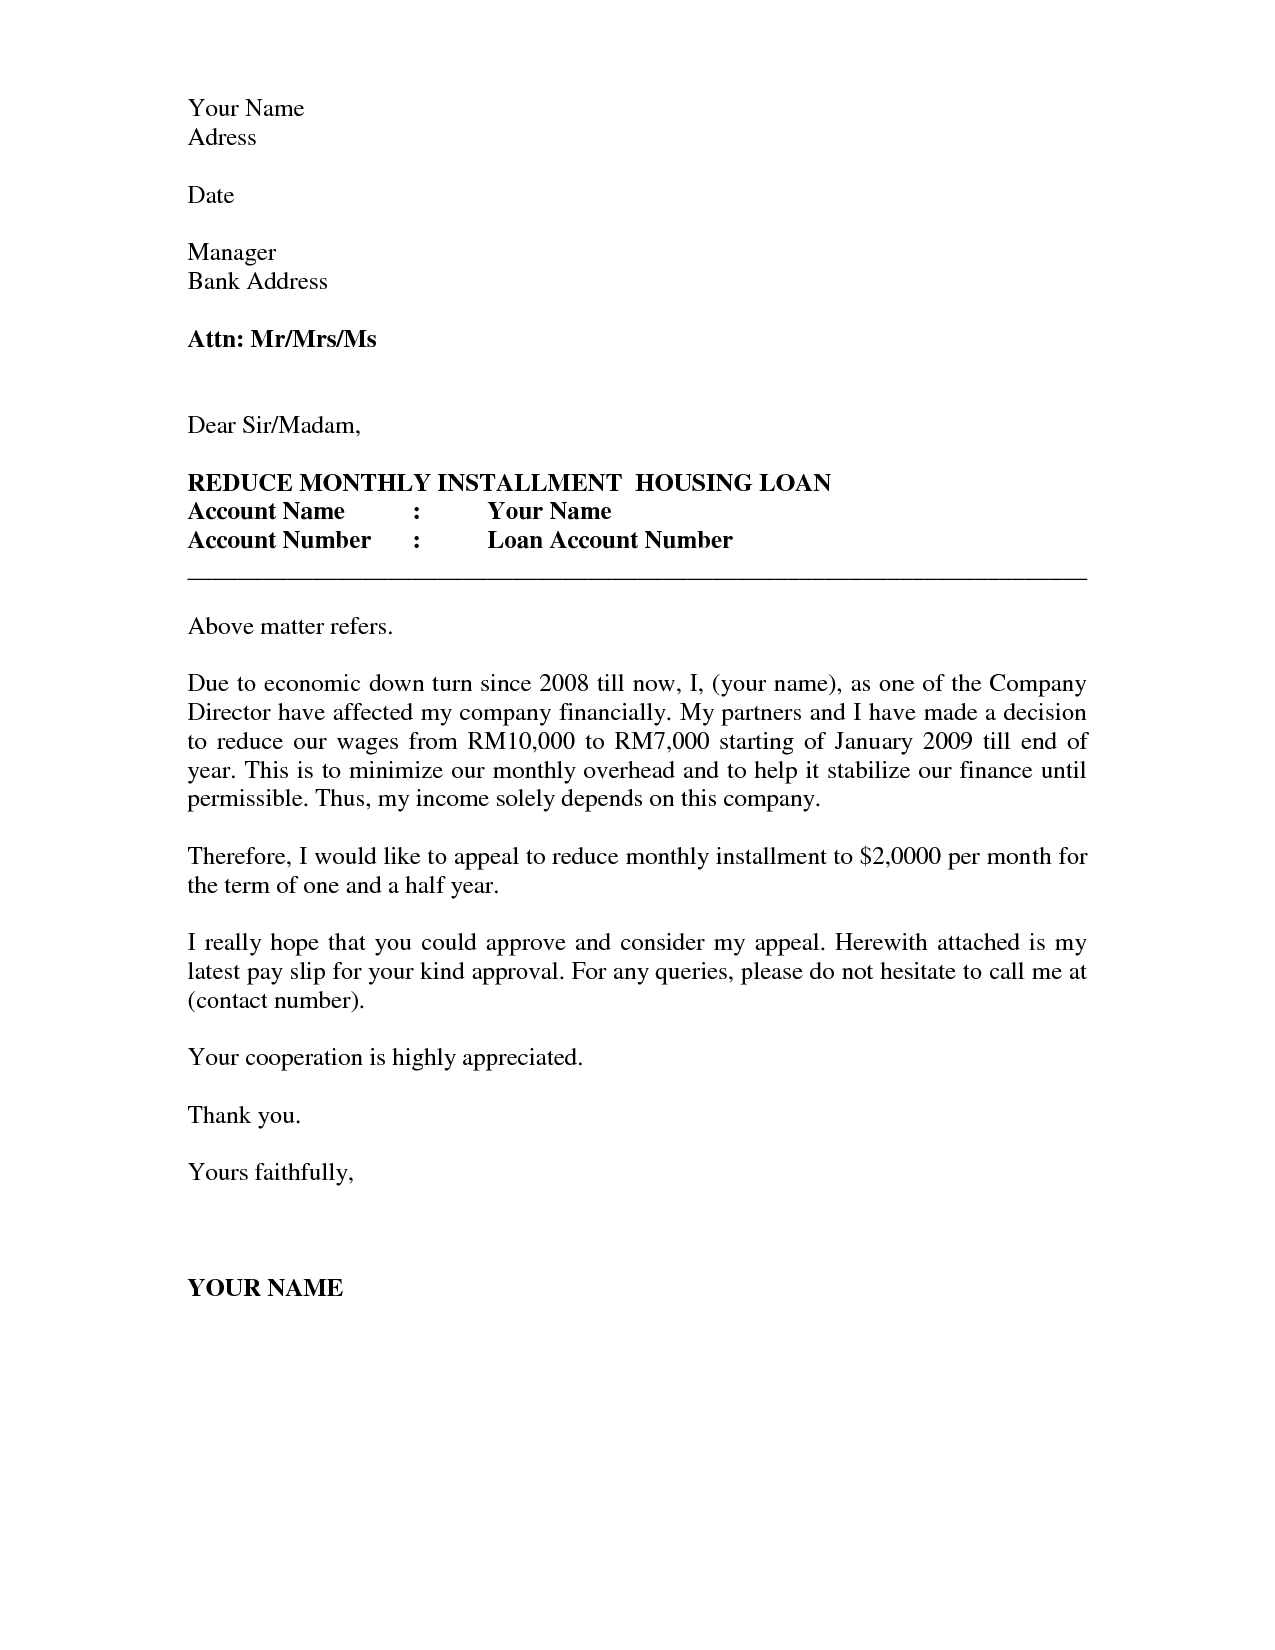 Business appeal letter a letter of appeal should be written in a business appeal letter a letter of appeal should be written in a professional business letter thecheapjerseys Gallery